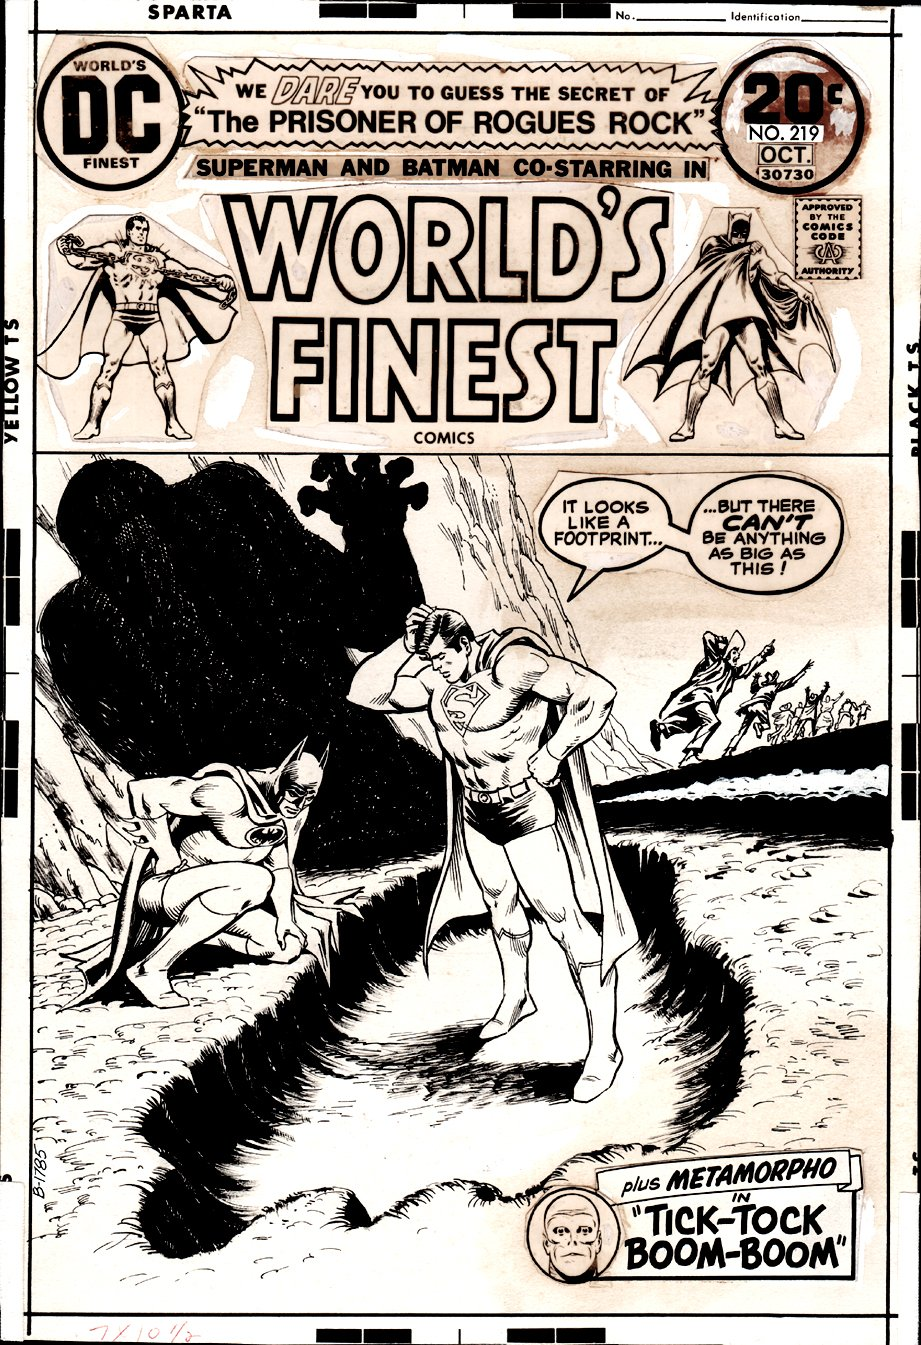 World's Finest Comics #219 Cover (1973)